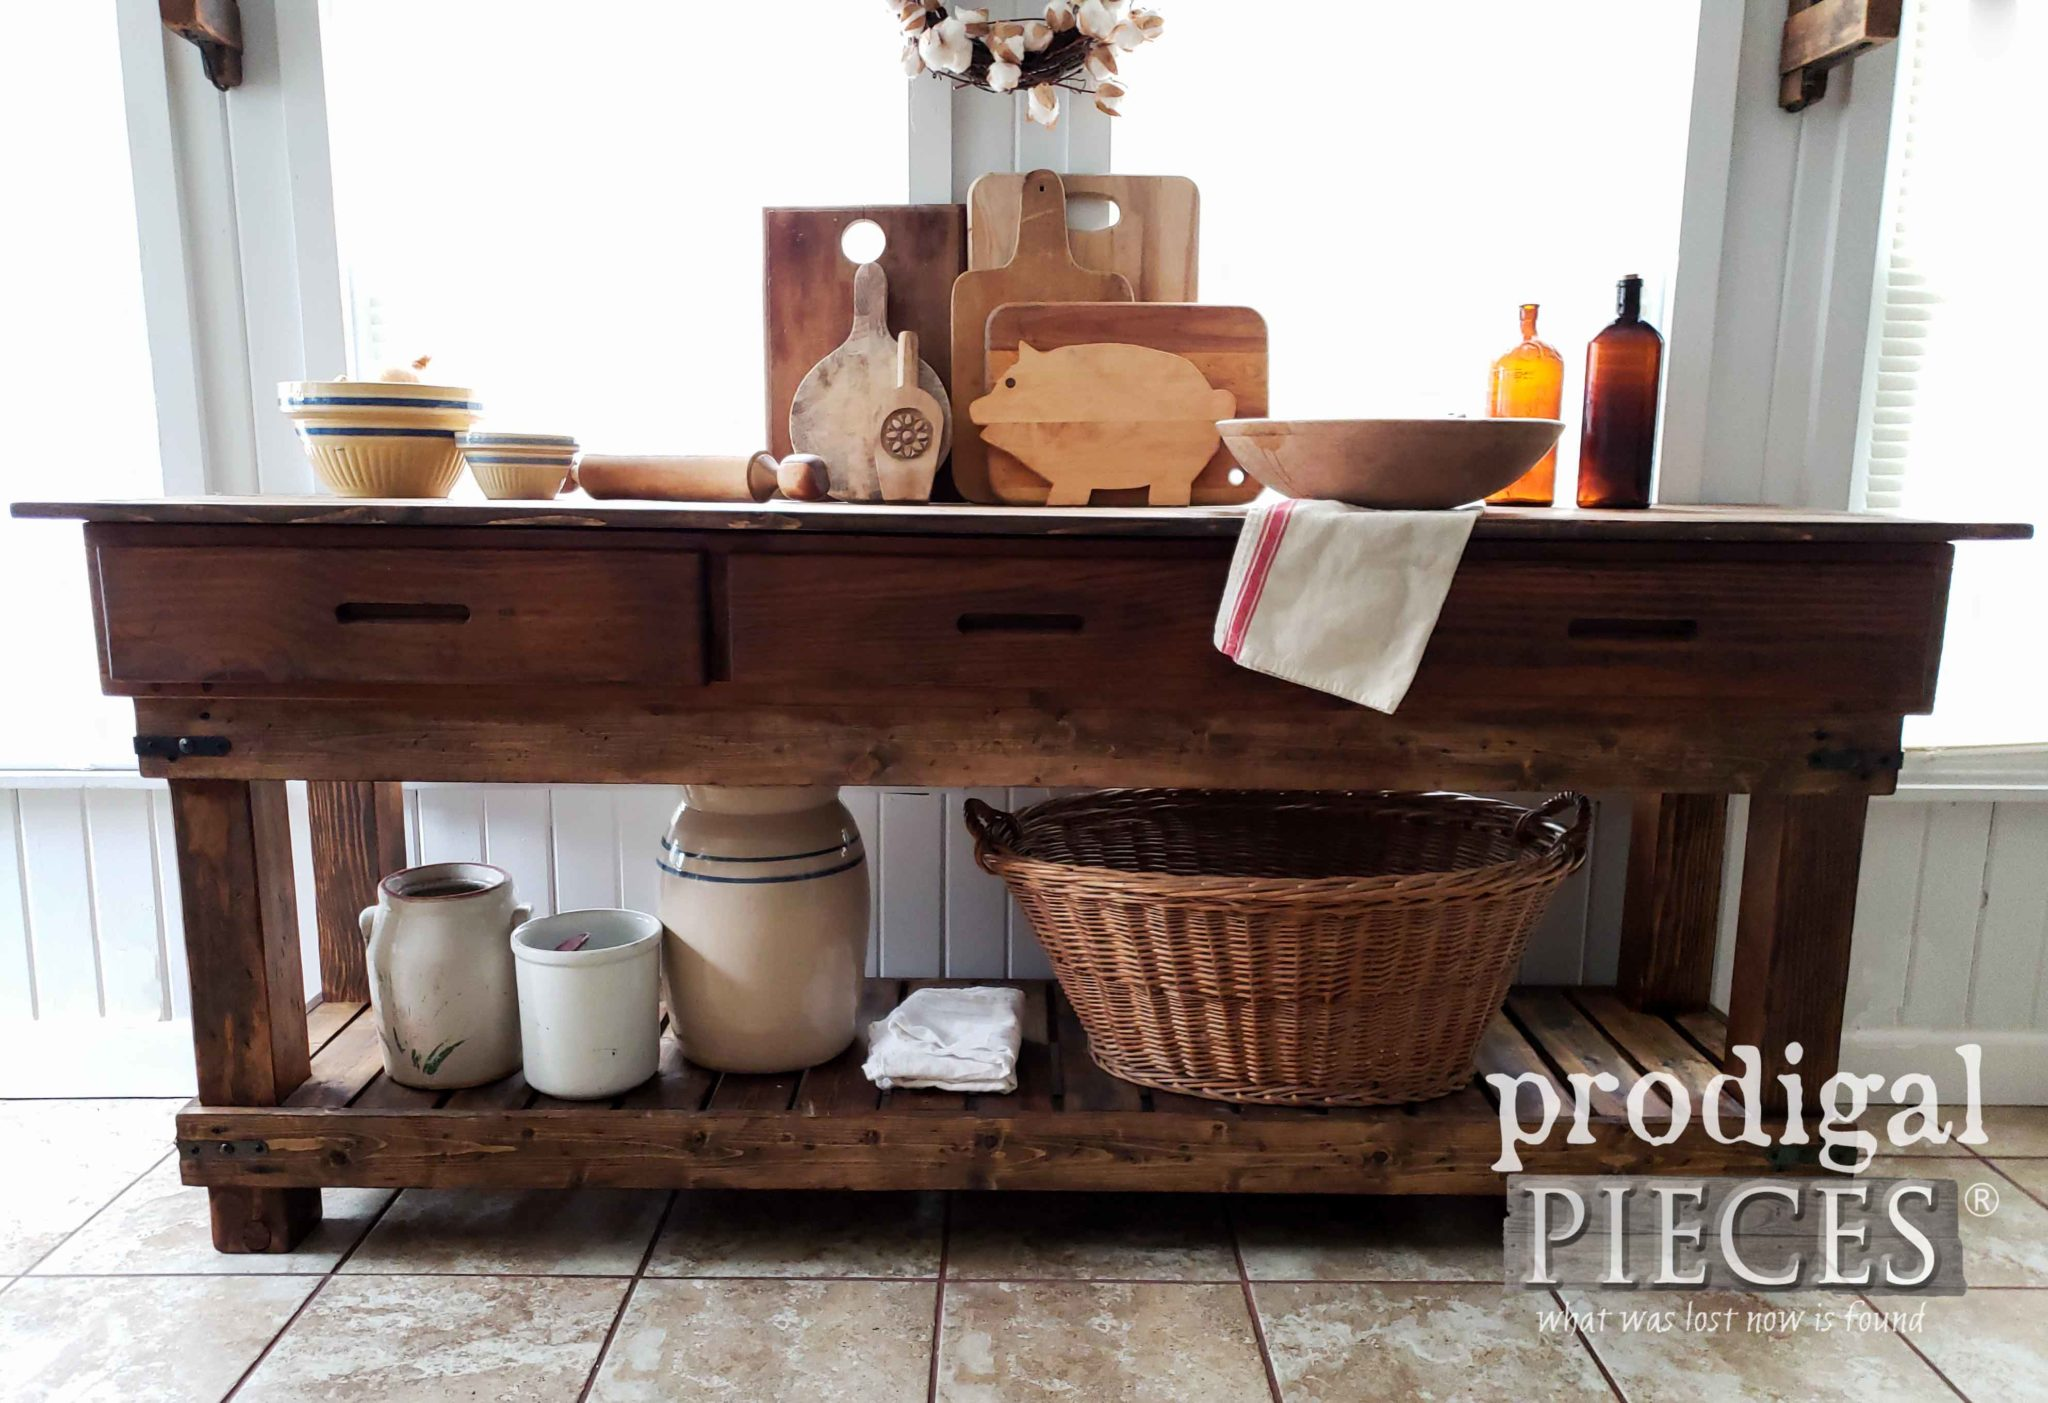 DIY Built Workbench for Kitchen or Entertainment Console by Larissa of Prodigal Pieces | prodigalpieces.com